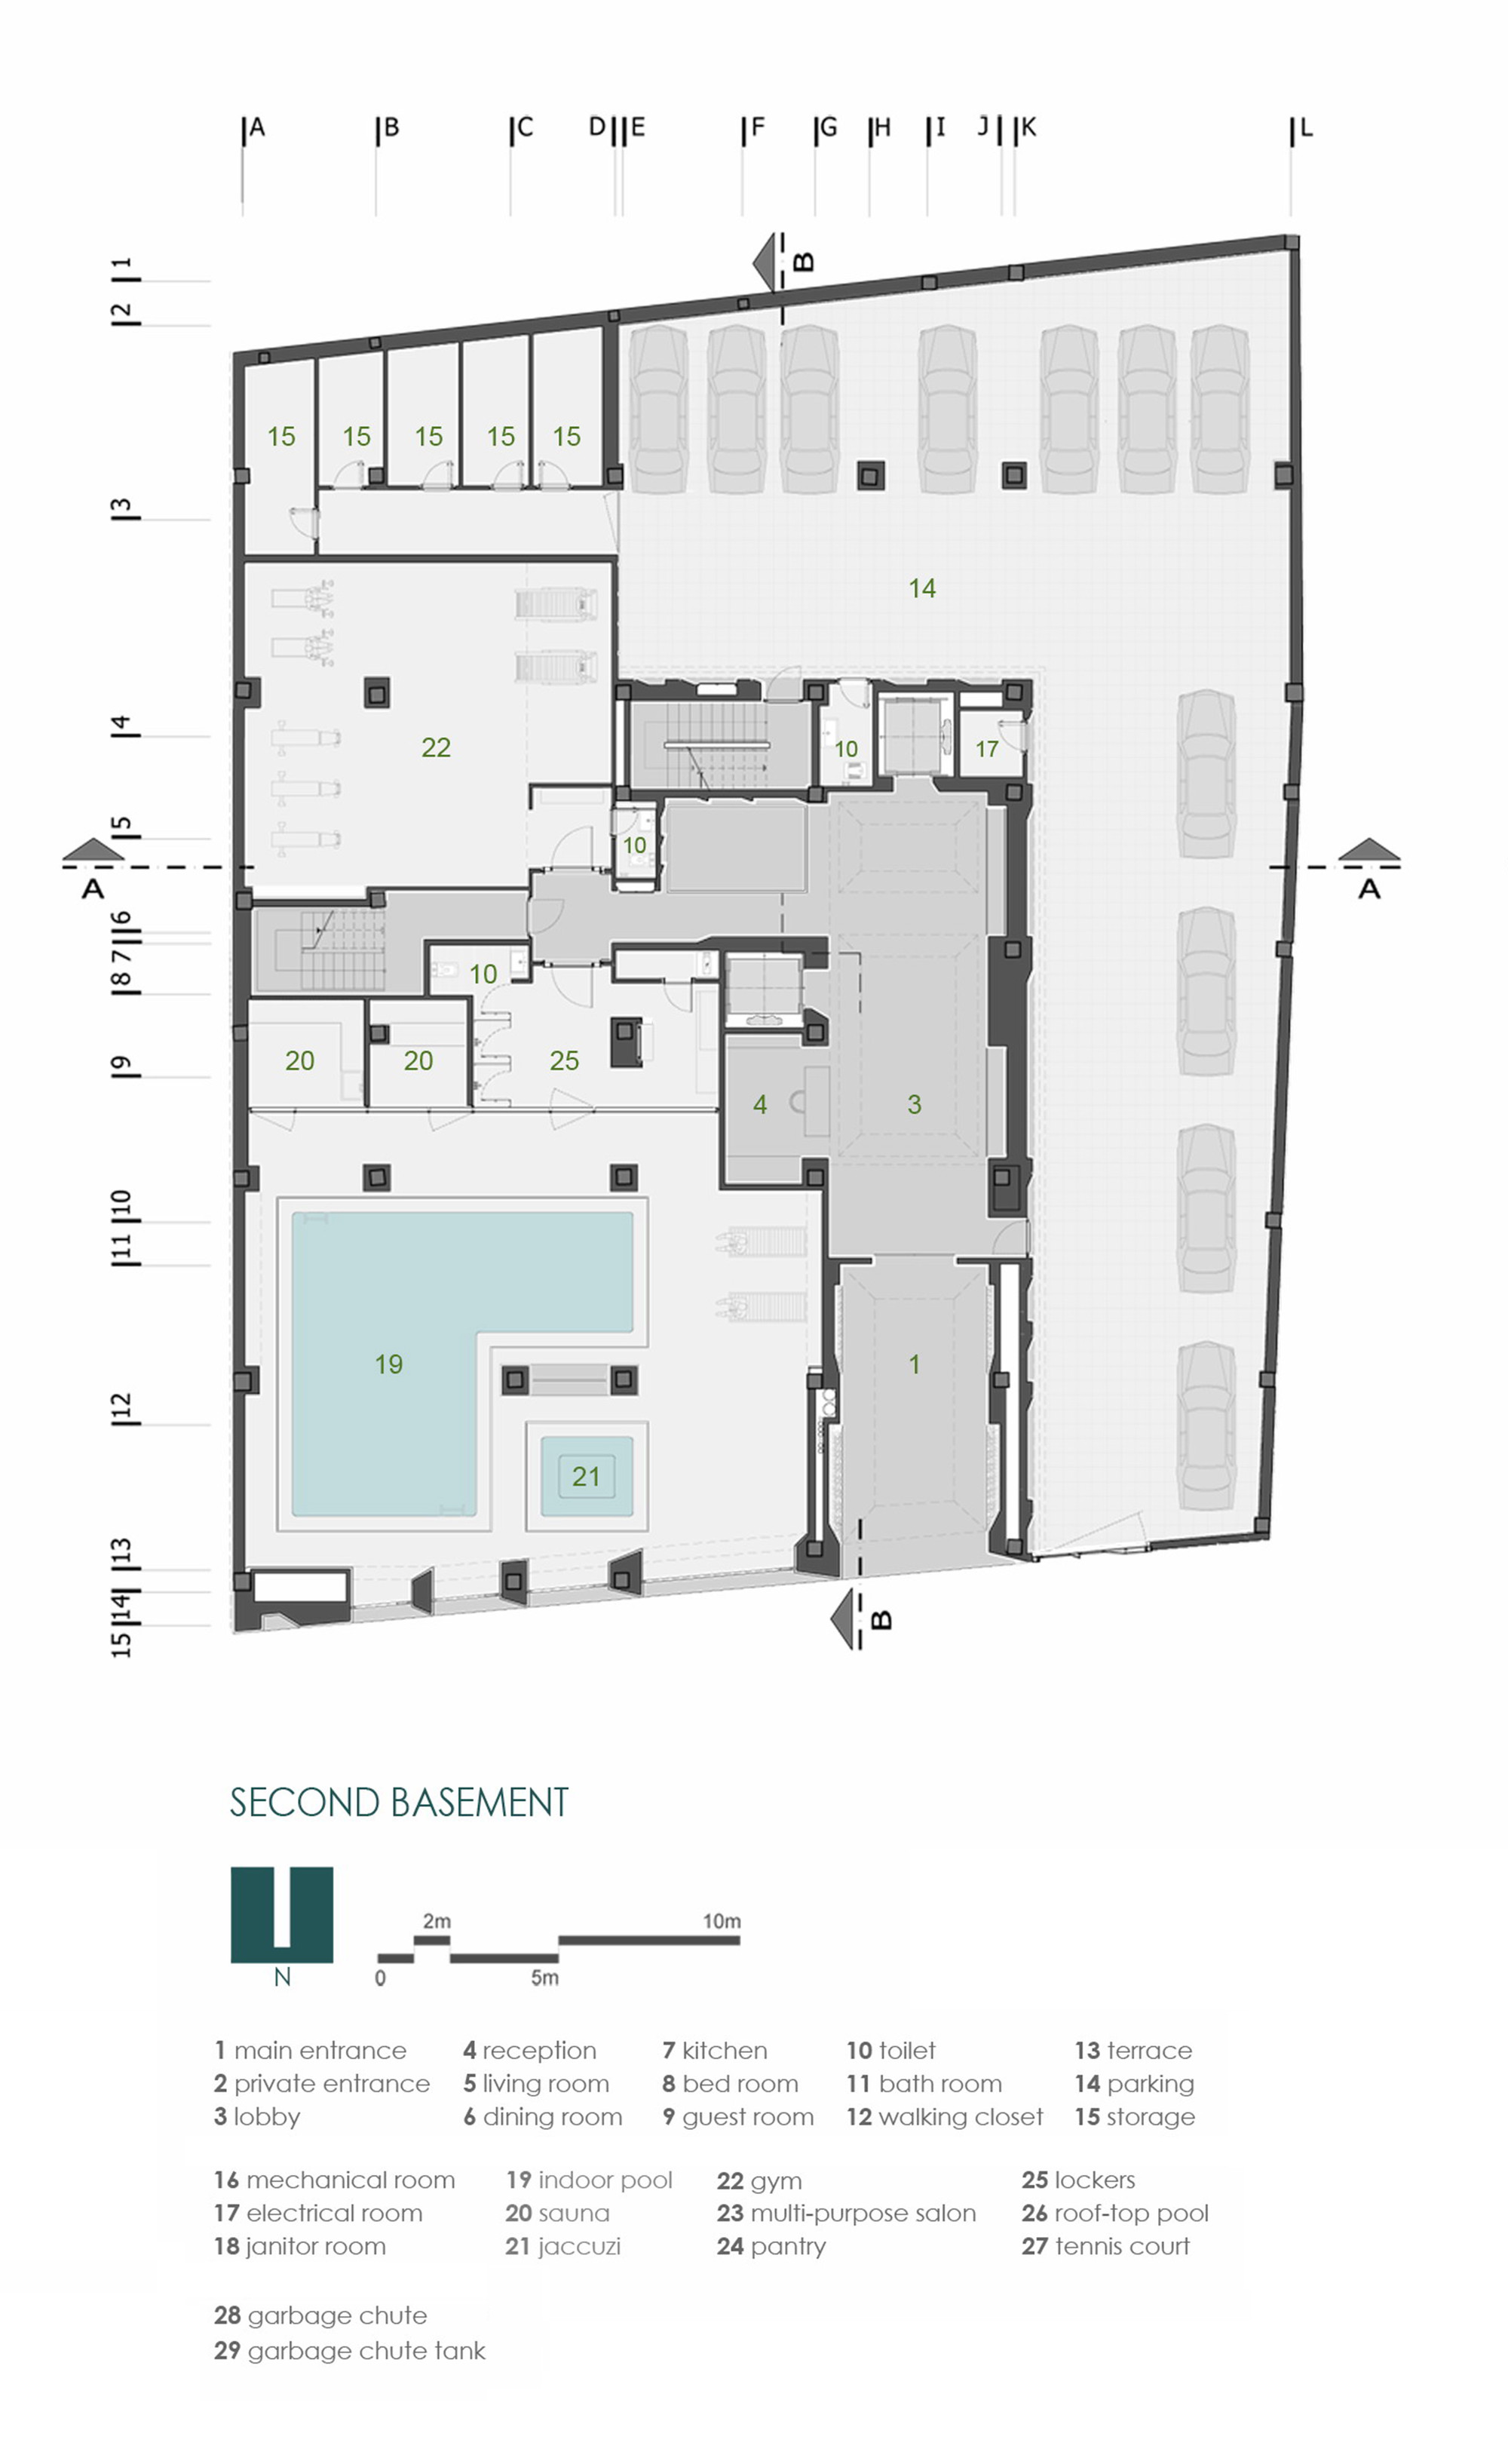 Floor plan of residential building Residential building plans